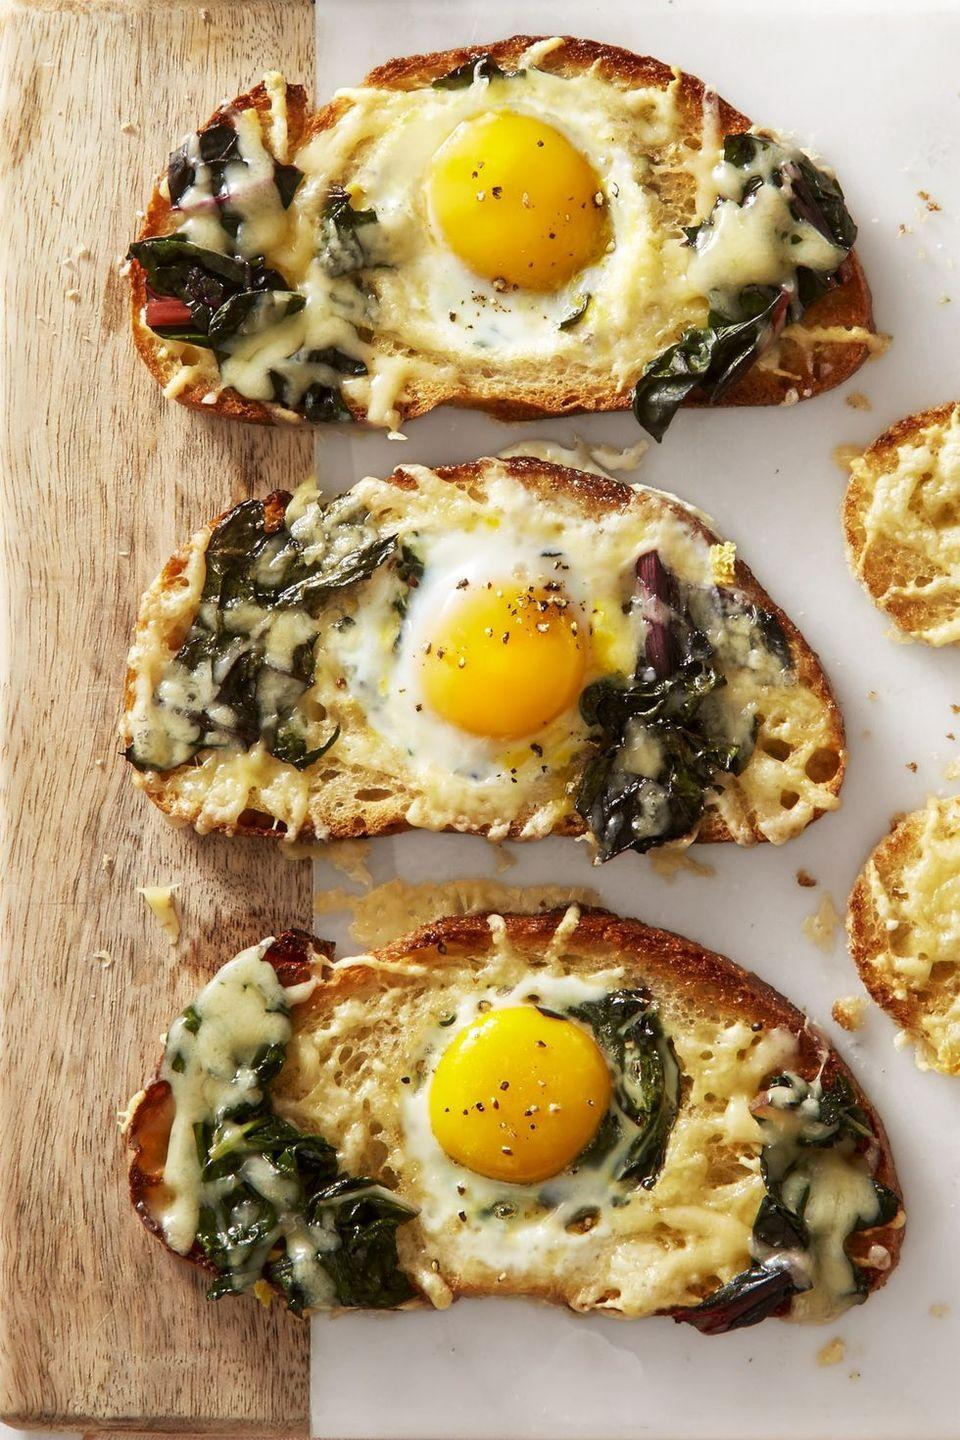 "<p>Amp-up the kid-friendly classic with earthy greens and nutty cheese. Now adults will love it too!</p><p><em><a href=""https://www.goodhousekeeping.com/food-recipes/a43666/chard-gruyere-eggs-in-the-hole-recipe/"" rel=""nofollow noopener"" target=""_blank"" data-ylk=""slk:Get the recipe for Chard and Gruyère Eggs in the Hole »"" class=""link rapid-noclick-resp"">Get the recipe for Chard and Gruyère Eggs in the Hole »</a></em></p>"